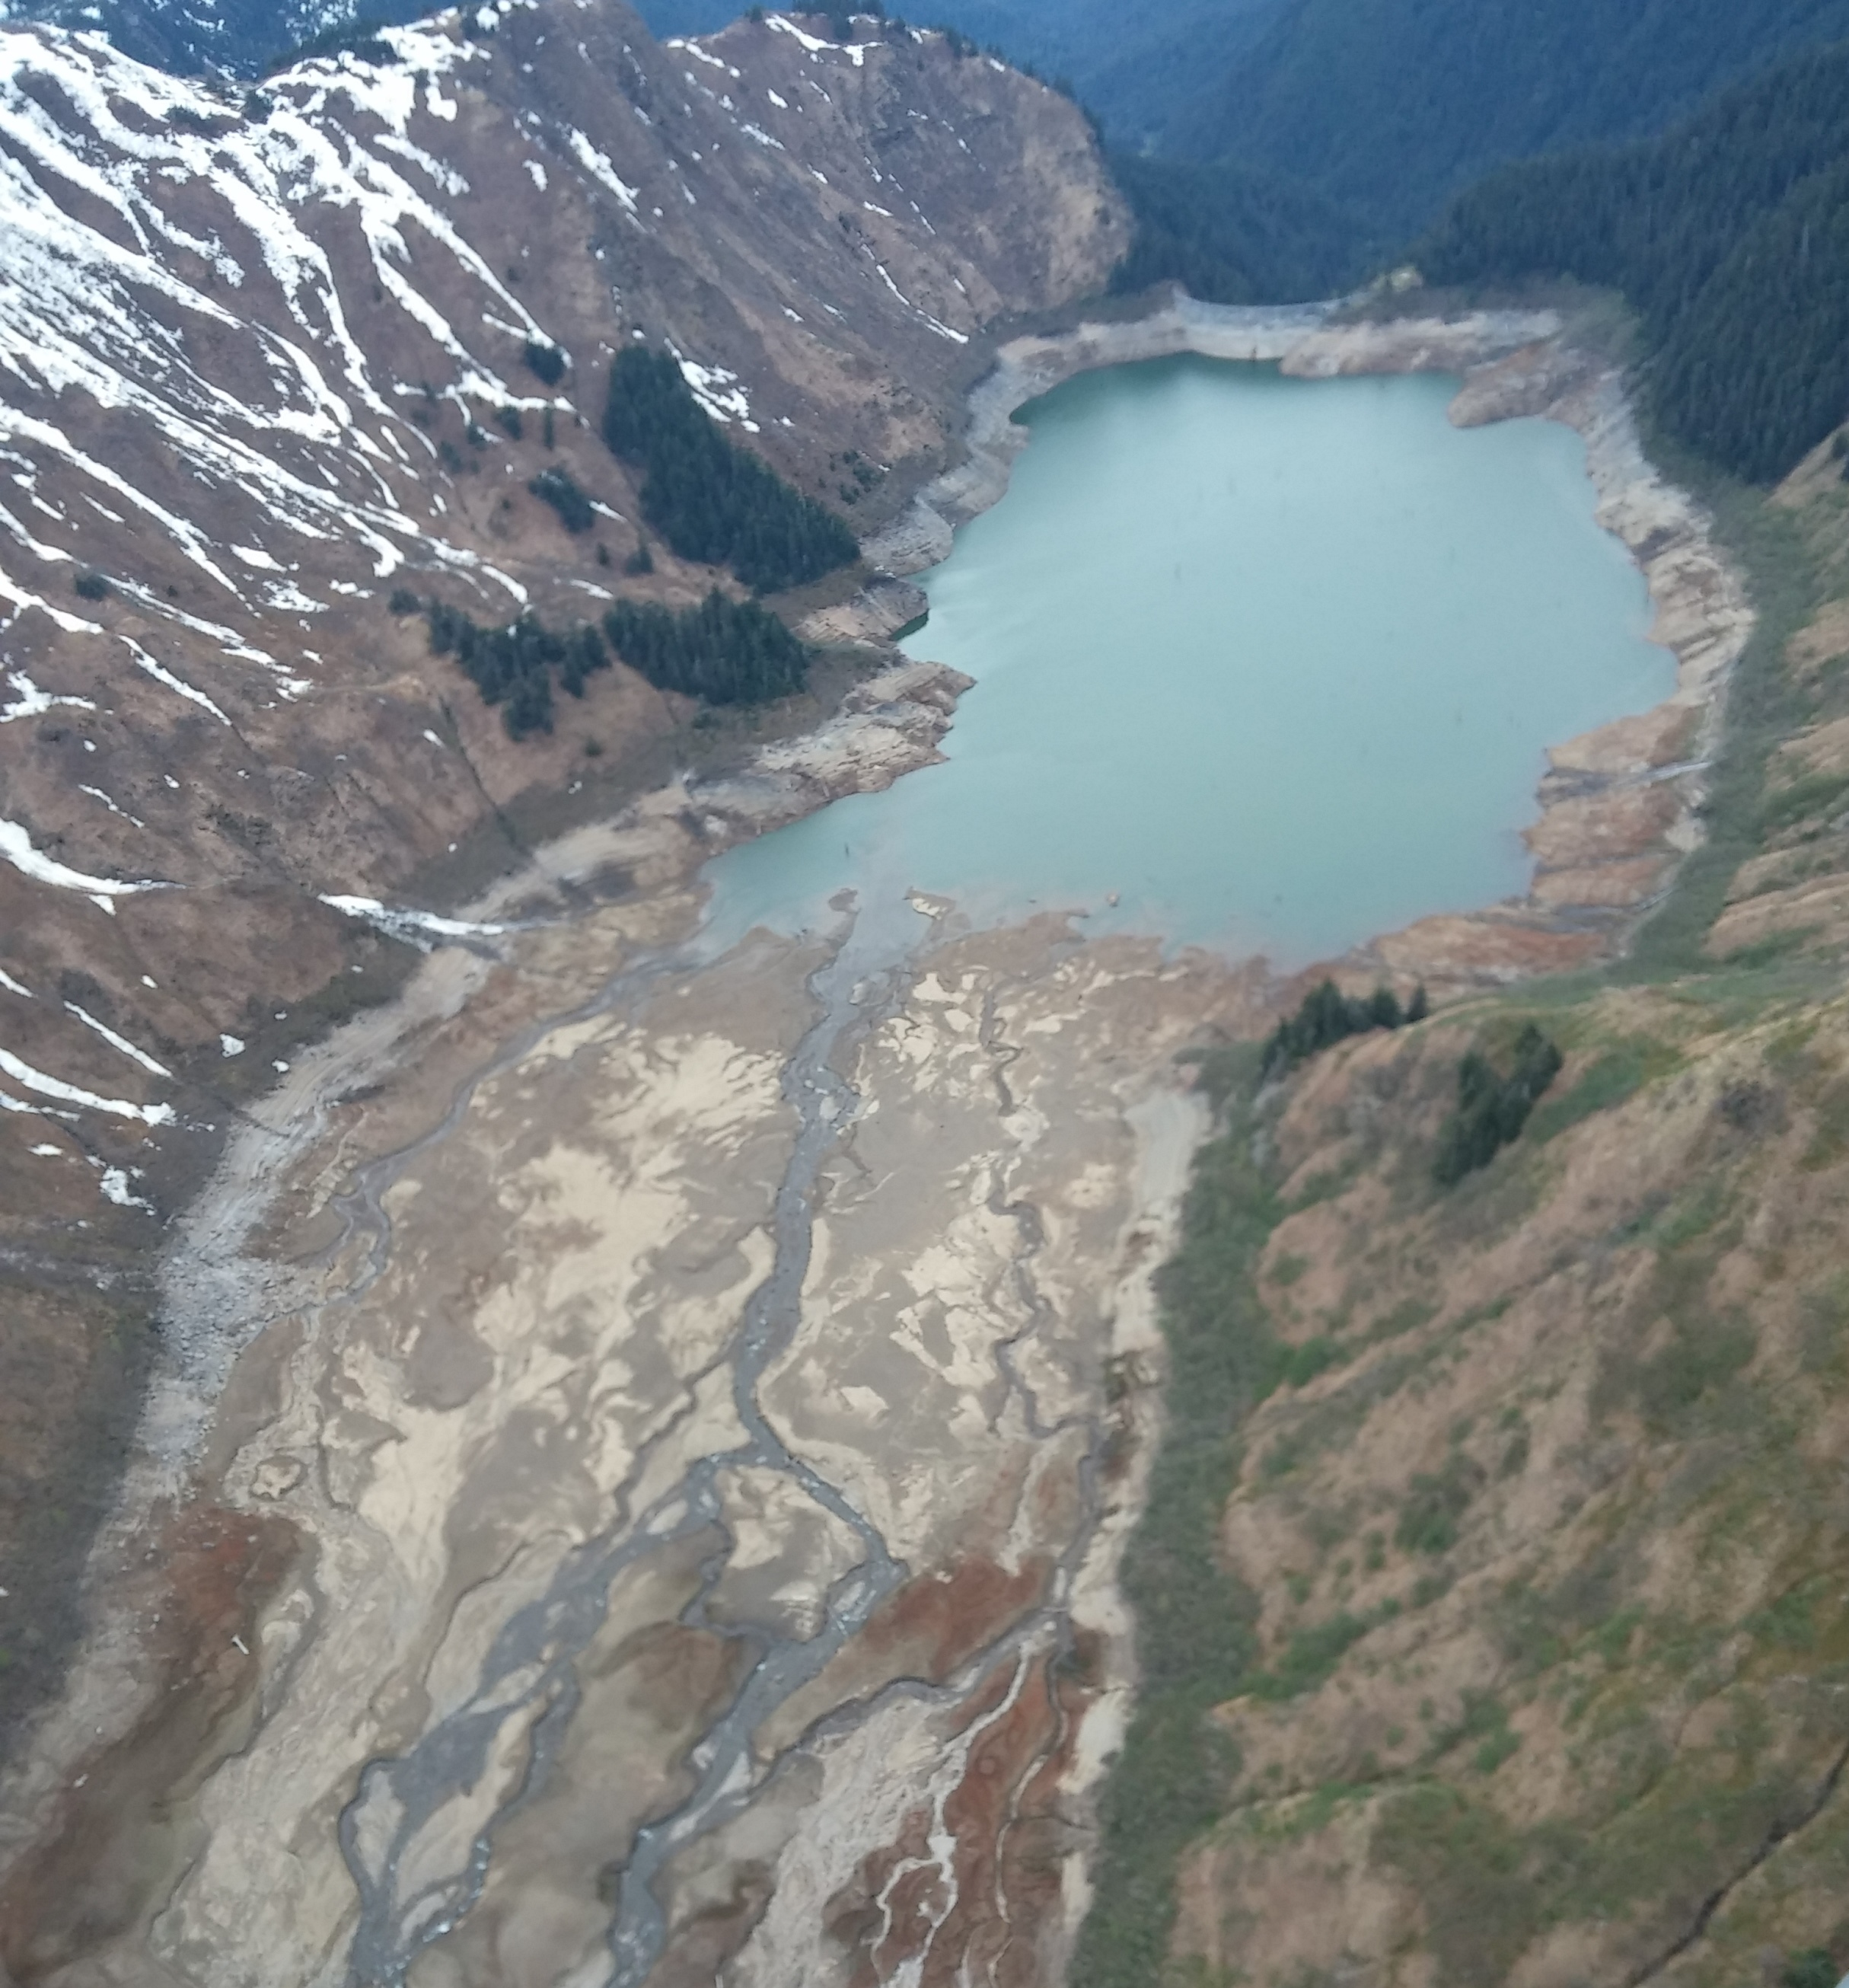 Channels at the upper end of Salmon Creek may be the source of much of the turbidity in the lake during spring runoff. (Photo courtesy Scott Willis/Alaska Electric Light and Power)